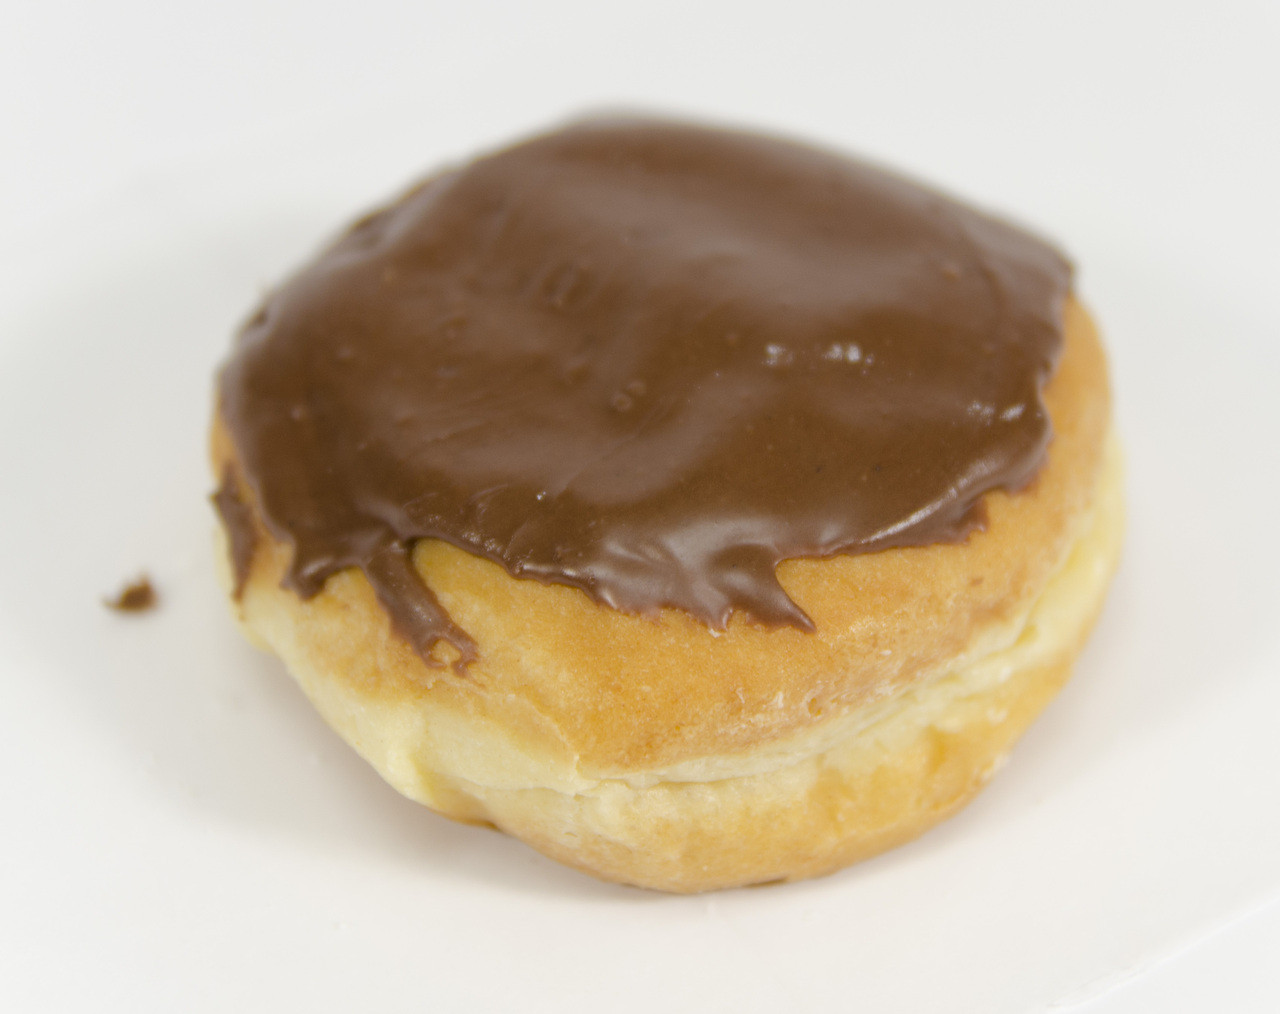 Chocolate Covered Crème-Filled Donuts - Bill's Donut Shop